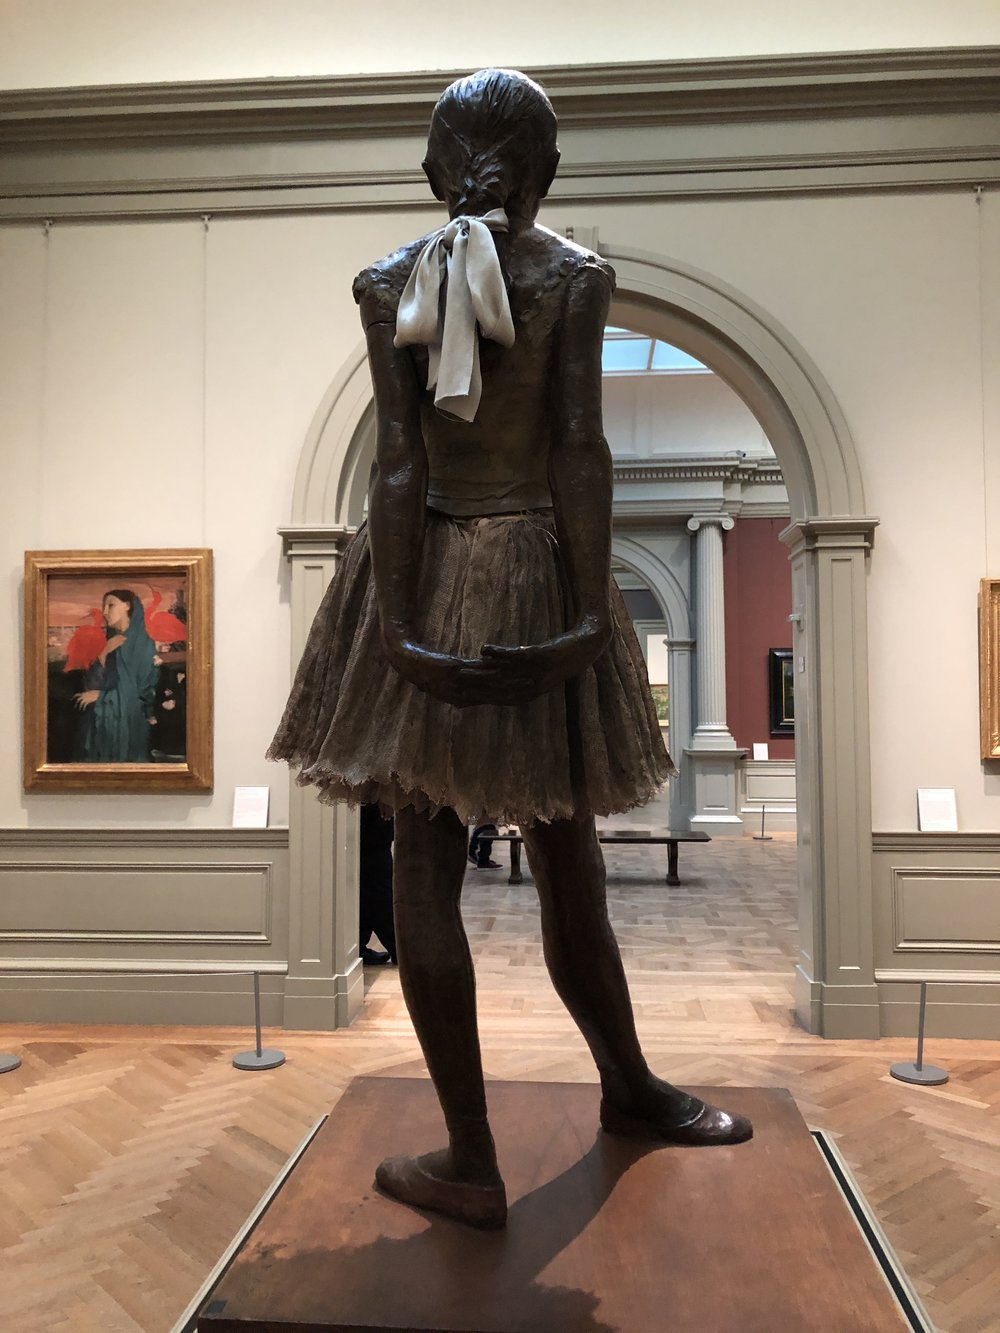 Degas-Dancer-sculpture-back.jpg